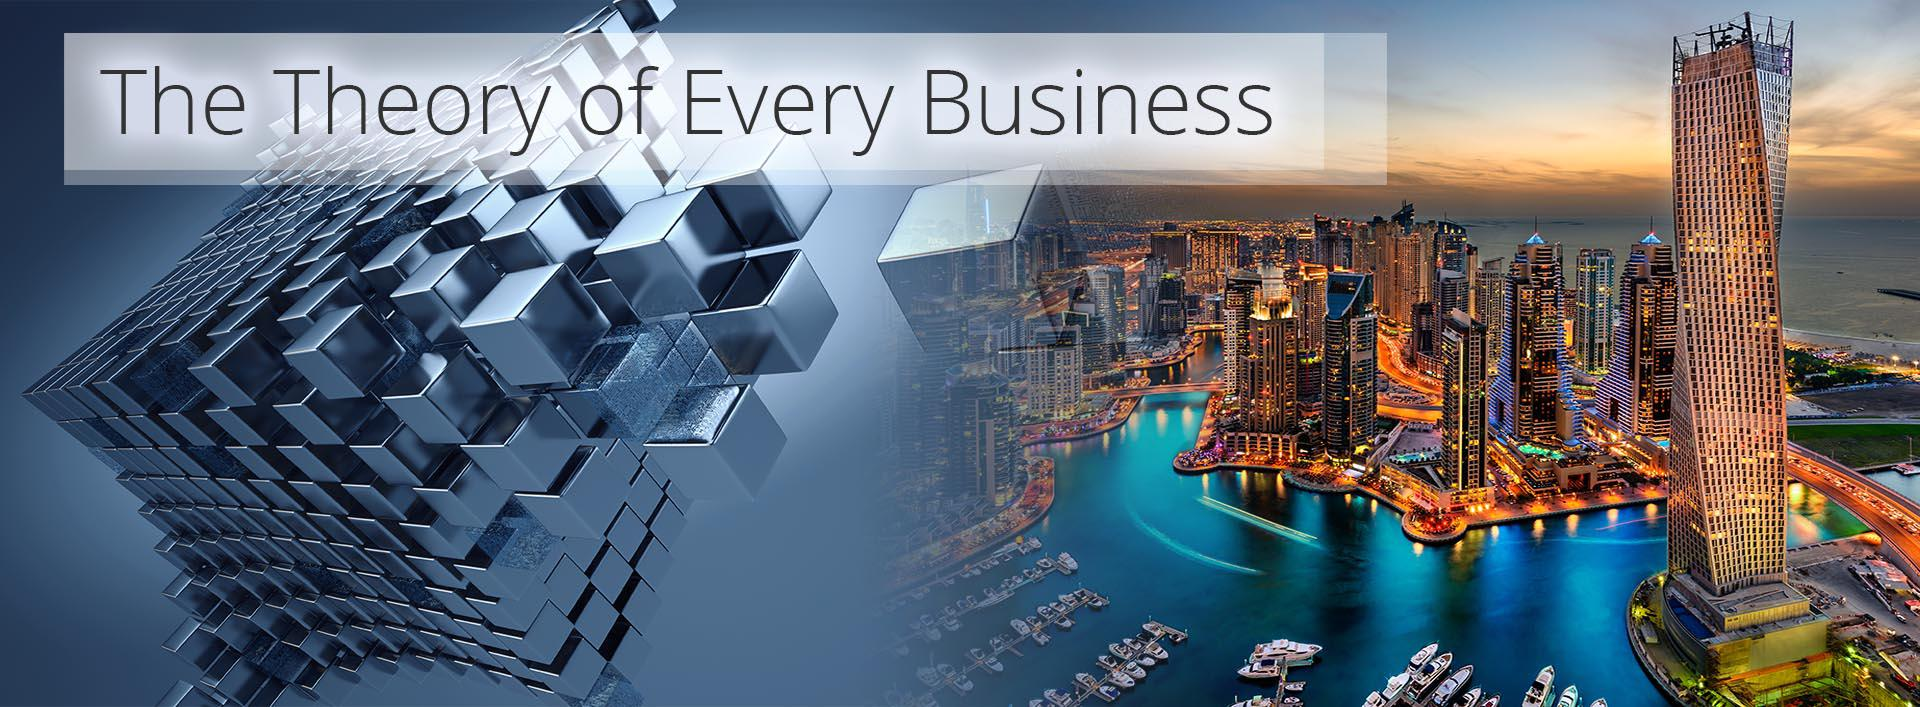 The Theory of Every Business 2.02